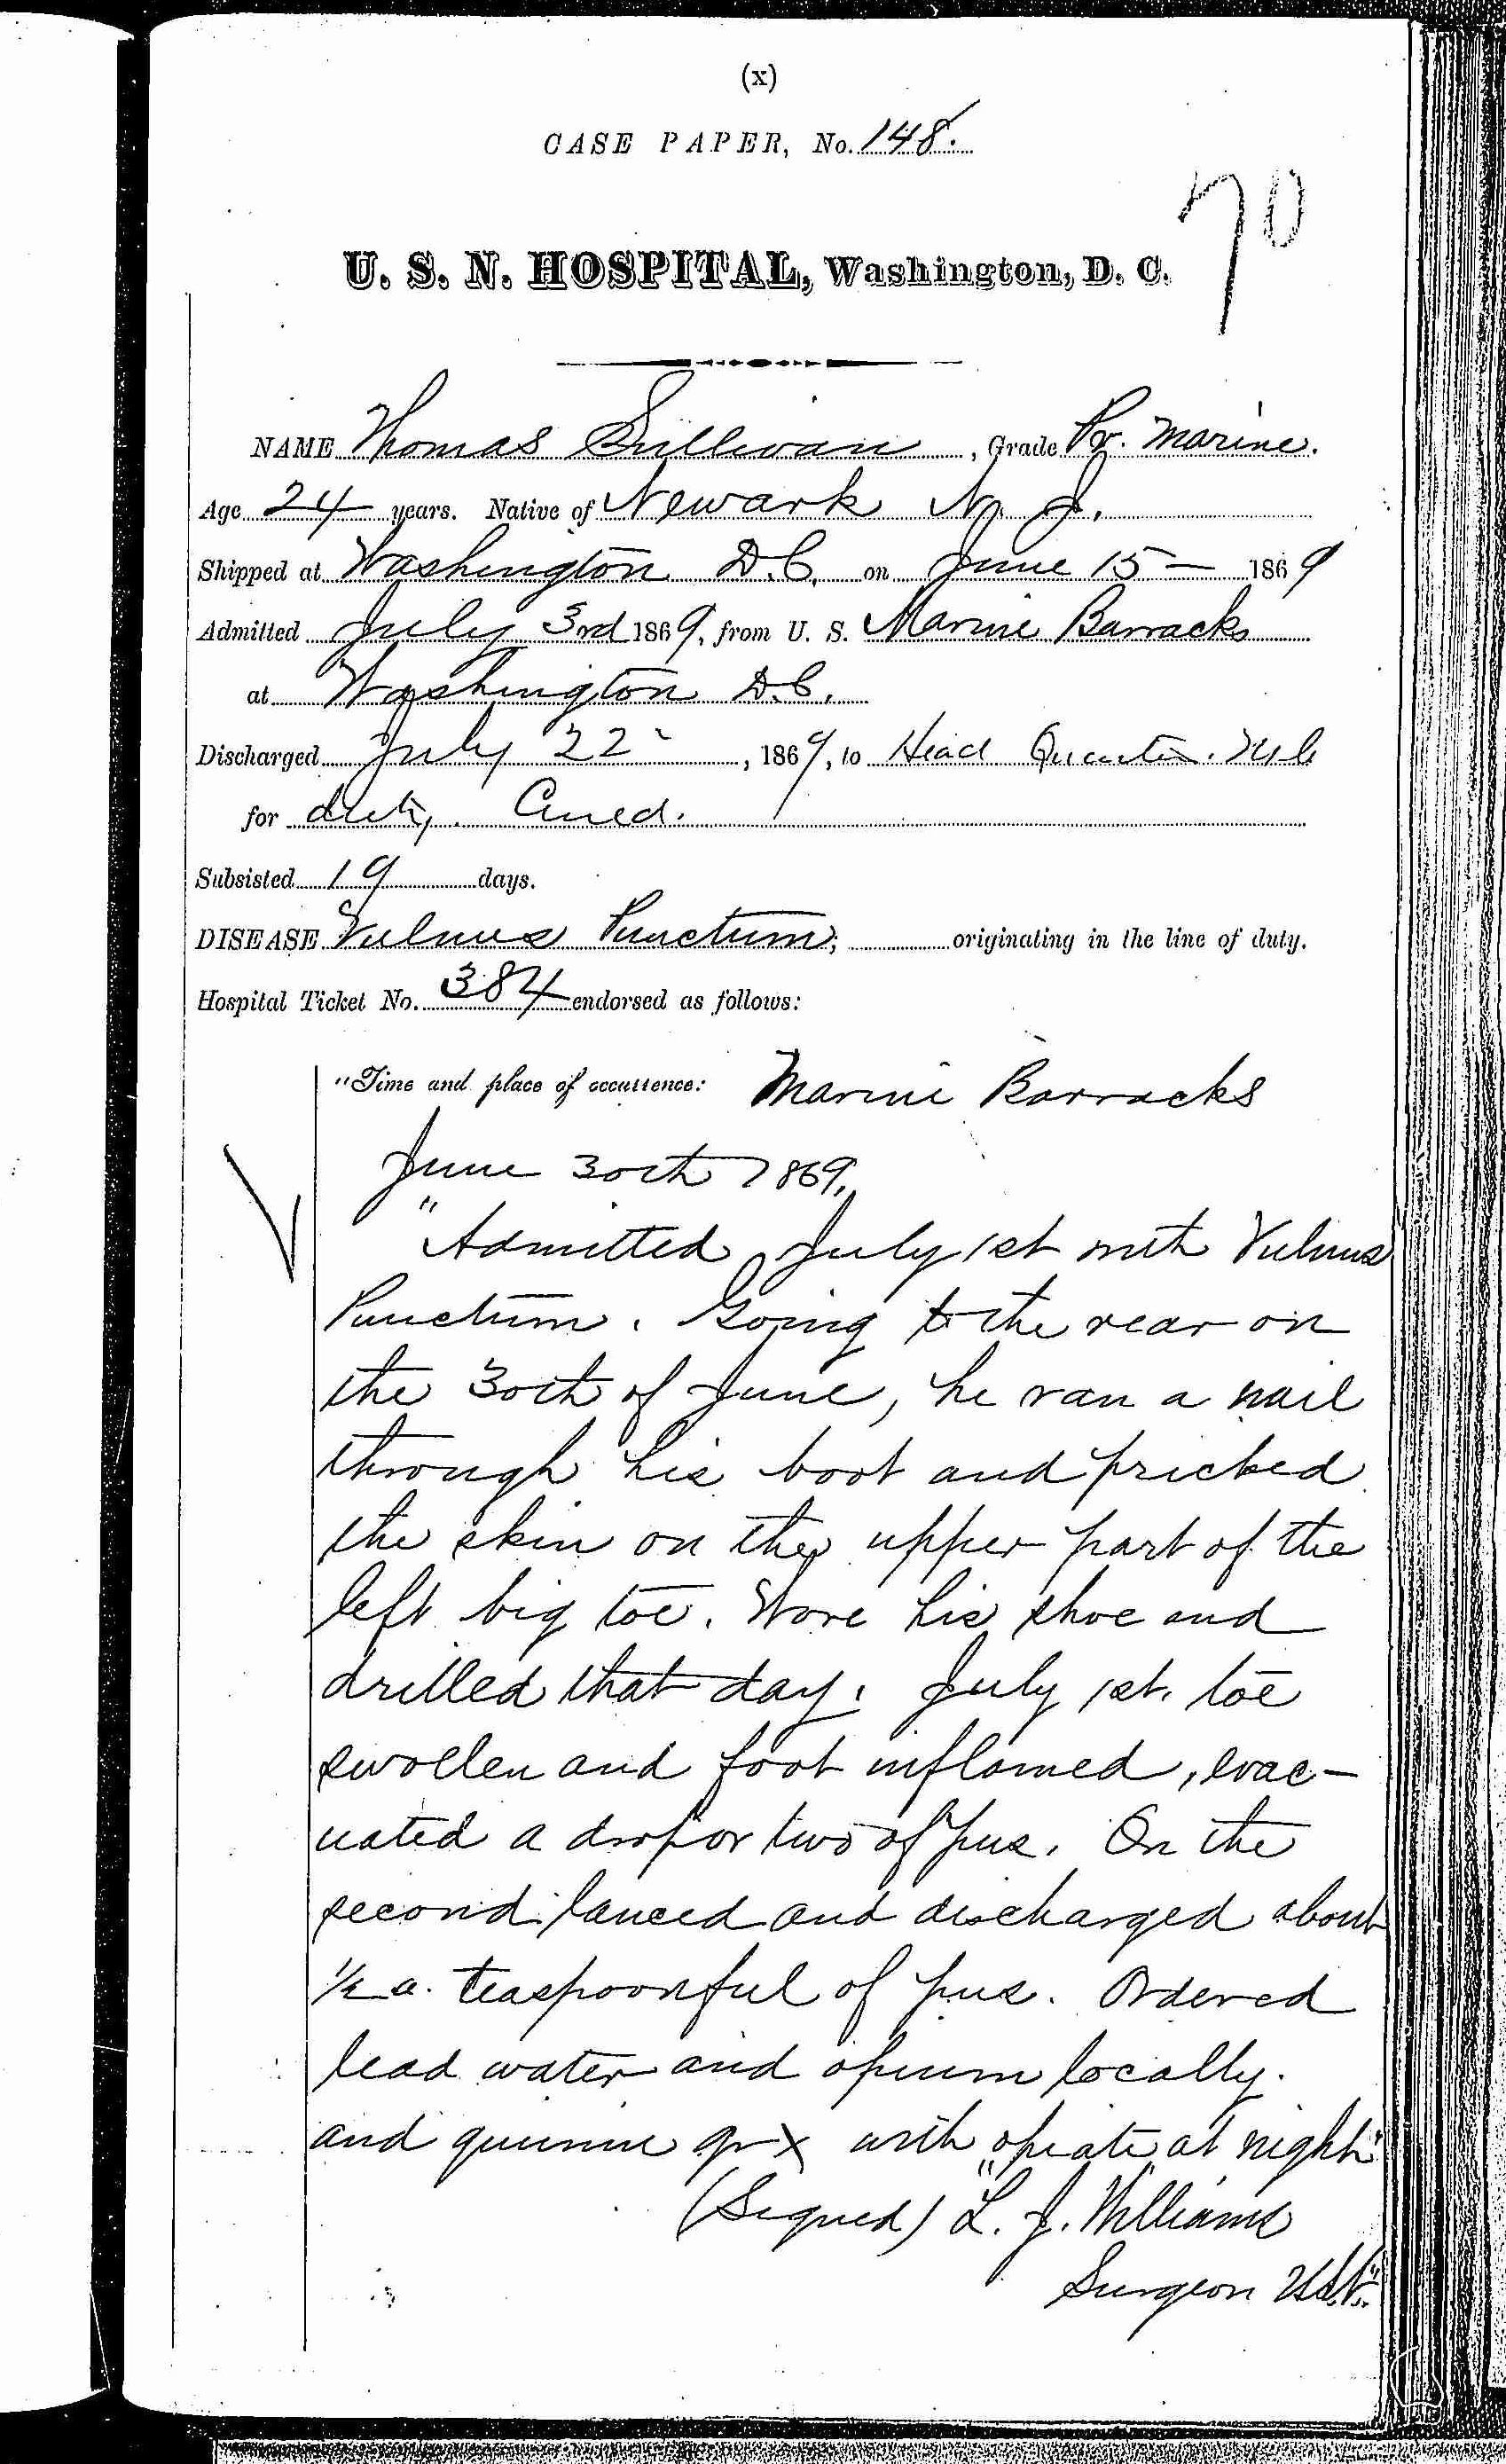 Entry for Thomas Sullivan (page 1 of 2) in the log Hospital Tickets and Case Papers - Naval Hospital - Washington, D.C. - 1868-69